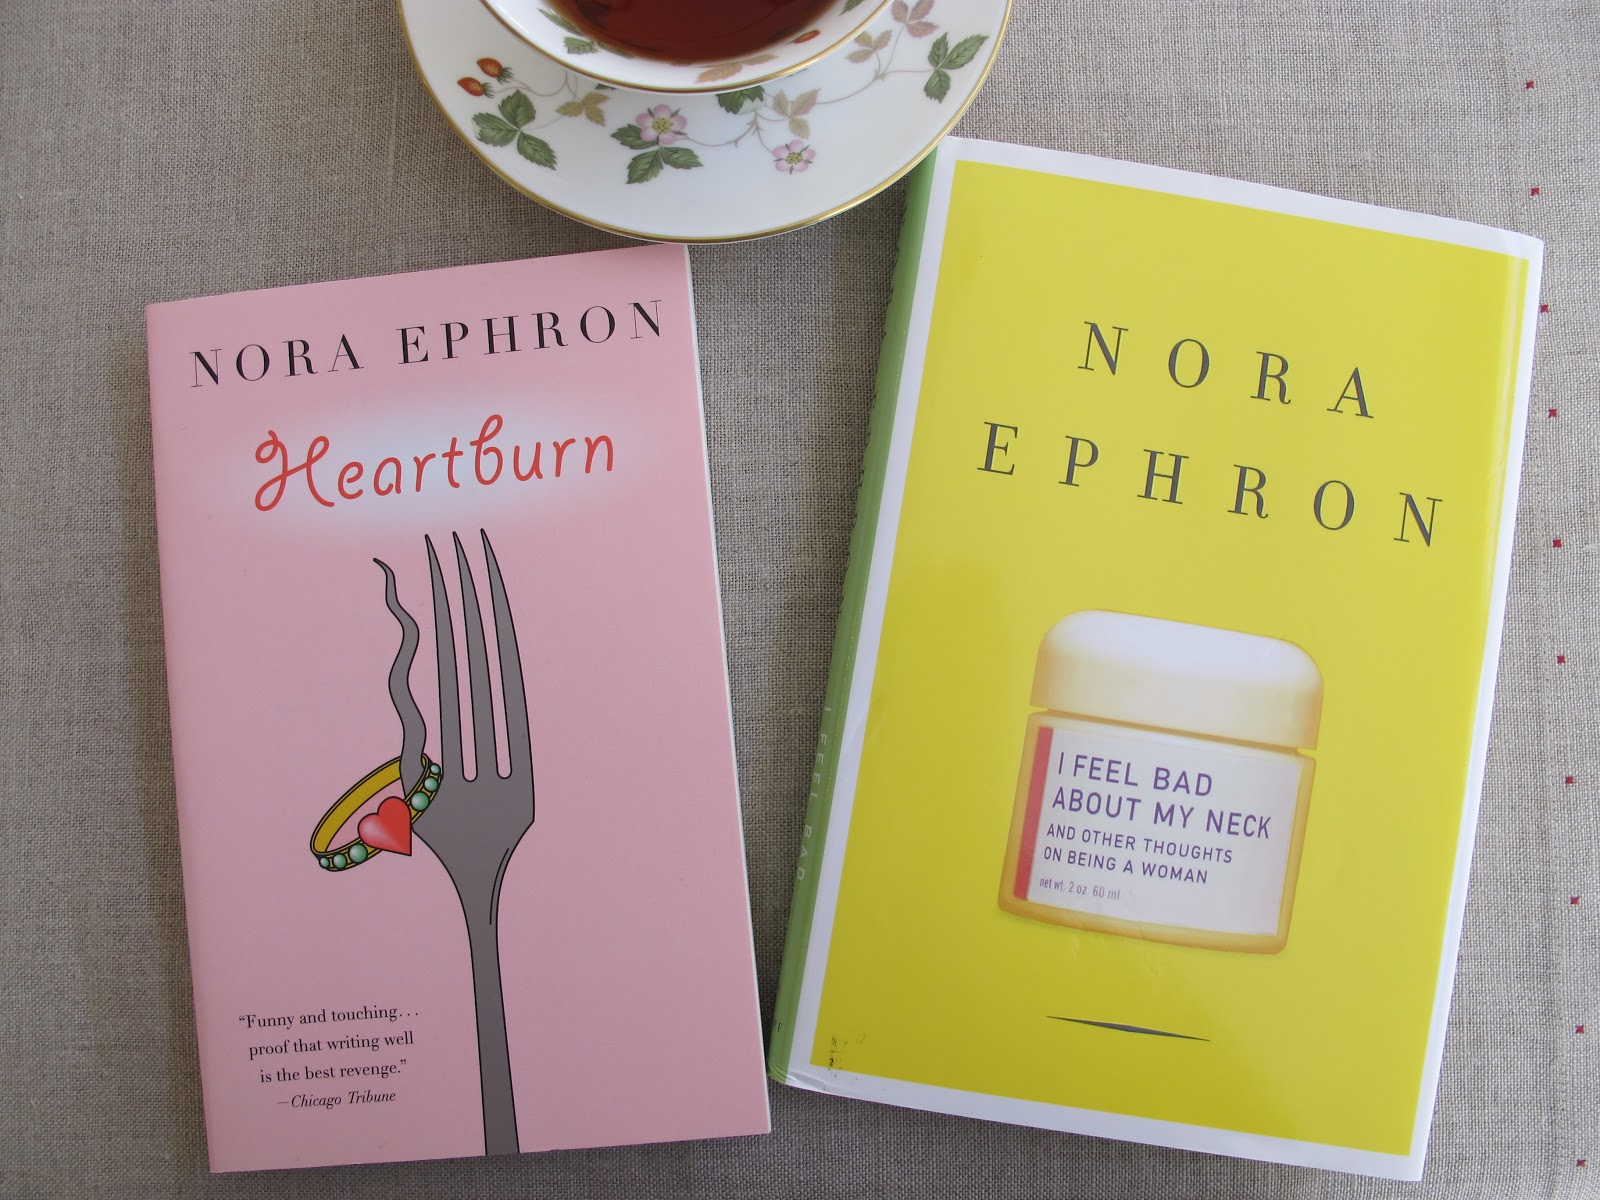 ciao domenica reading nora ephron most of us had heartburn when it was published thirty years ago rereading this book was a pleasure it felt like ing an old friend